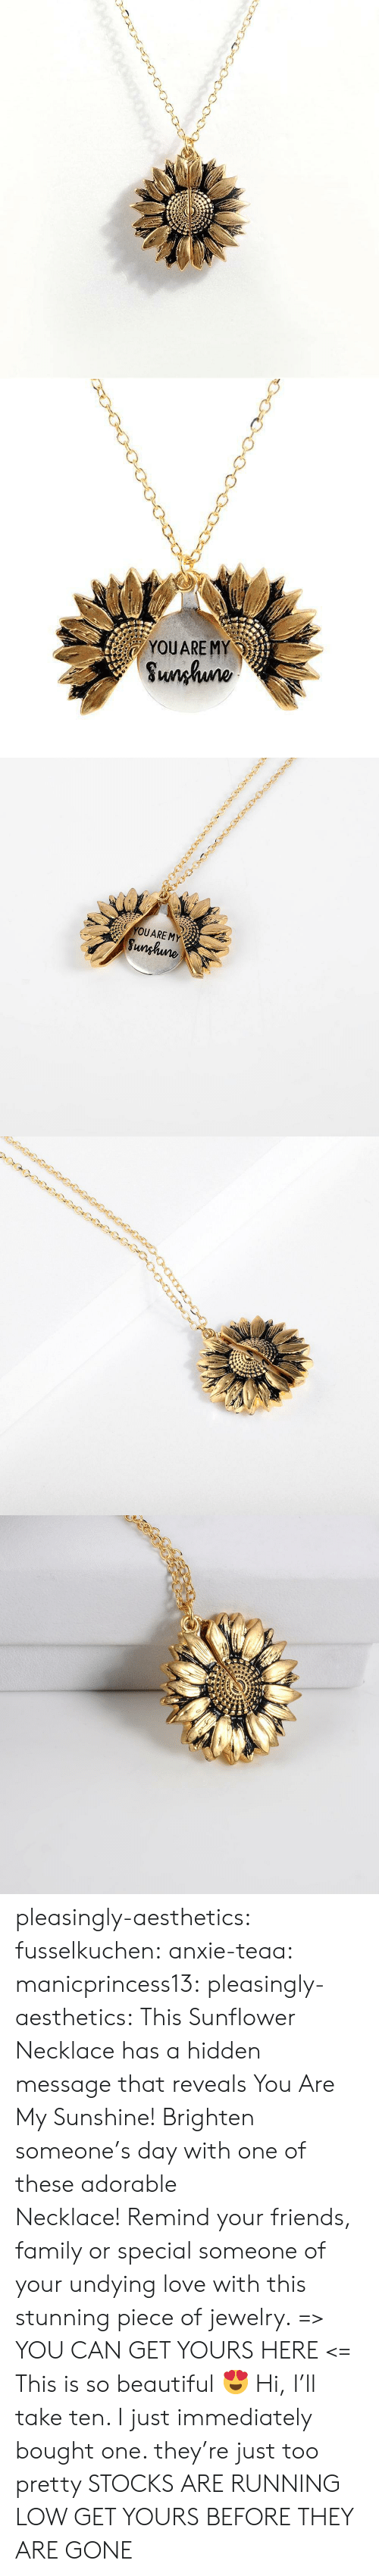 Stocks: YOUARE MY  Sunhuno   YOUARE MY  Sunghune pleasingly-aesthetics:  fusselkuchen: anxie-teaa:   manicprincess13:   pleasingly-aesthetics:  This Sunflower Necklace has a hidden message that reveals You Are My Sunshine! Brighten someone's day with one of these adorable Necklace!Remind your friends, family or special someone of your undying love with this stunning piece of jewelry. => YOU CAN GET YOURS HERE <=   This is so beautiful ?    Hi, I'll take ten.    I just immediately bought one. they're just too pretty   STOCKS ARE RUNNING LOW GET YOURS BEFORE THEY ARE GONE